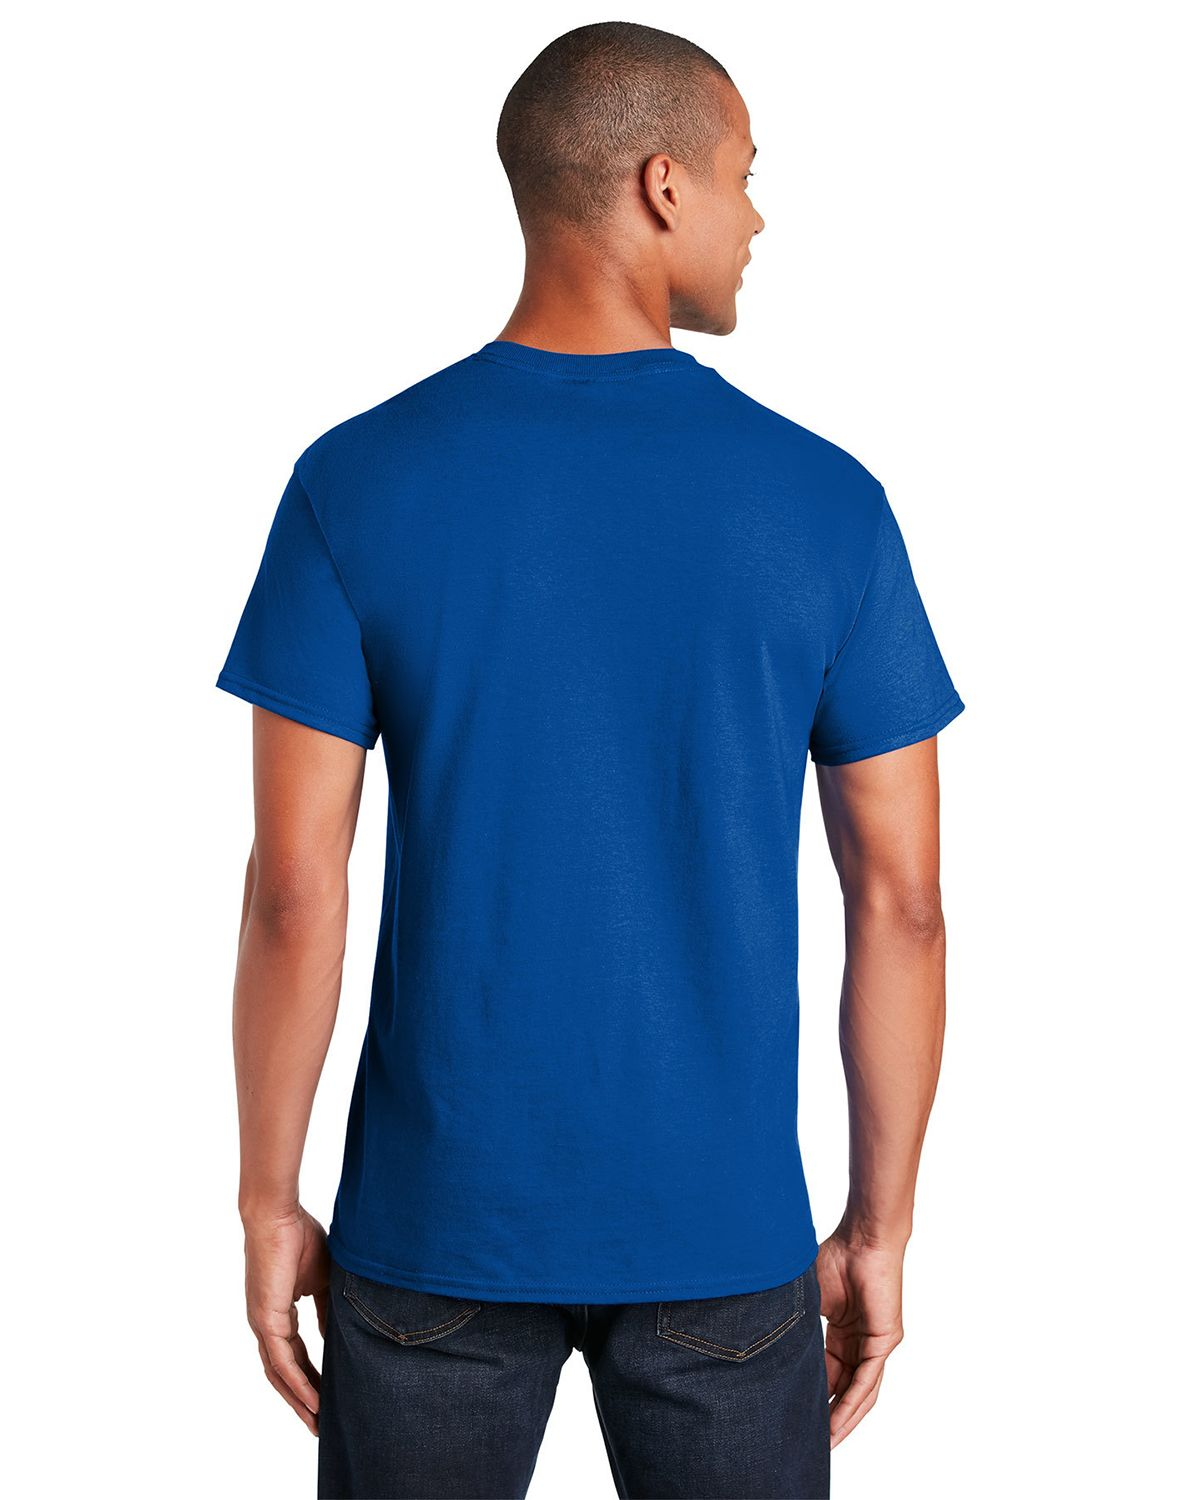 Gildan 2300 ultra cotton 100 cotton t shirt size chart for Gildan brand t shirt size chart